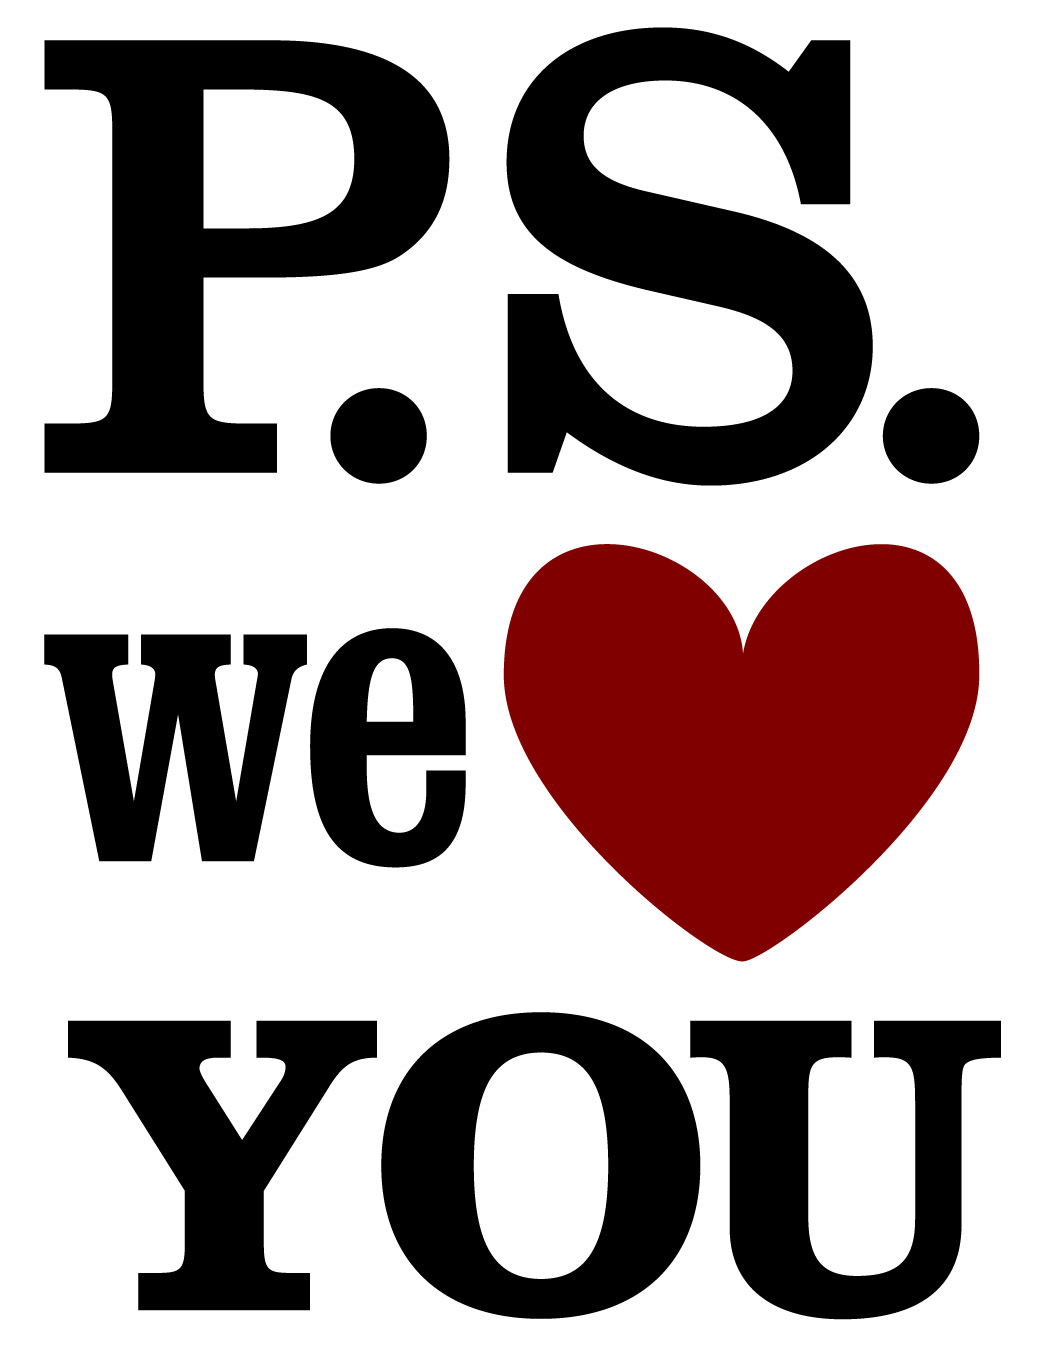 1050x1350 We Love You Clip Art We 39 Ll Be Adding New Clip Art@share